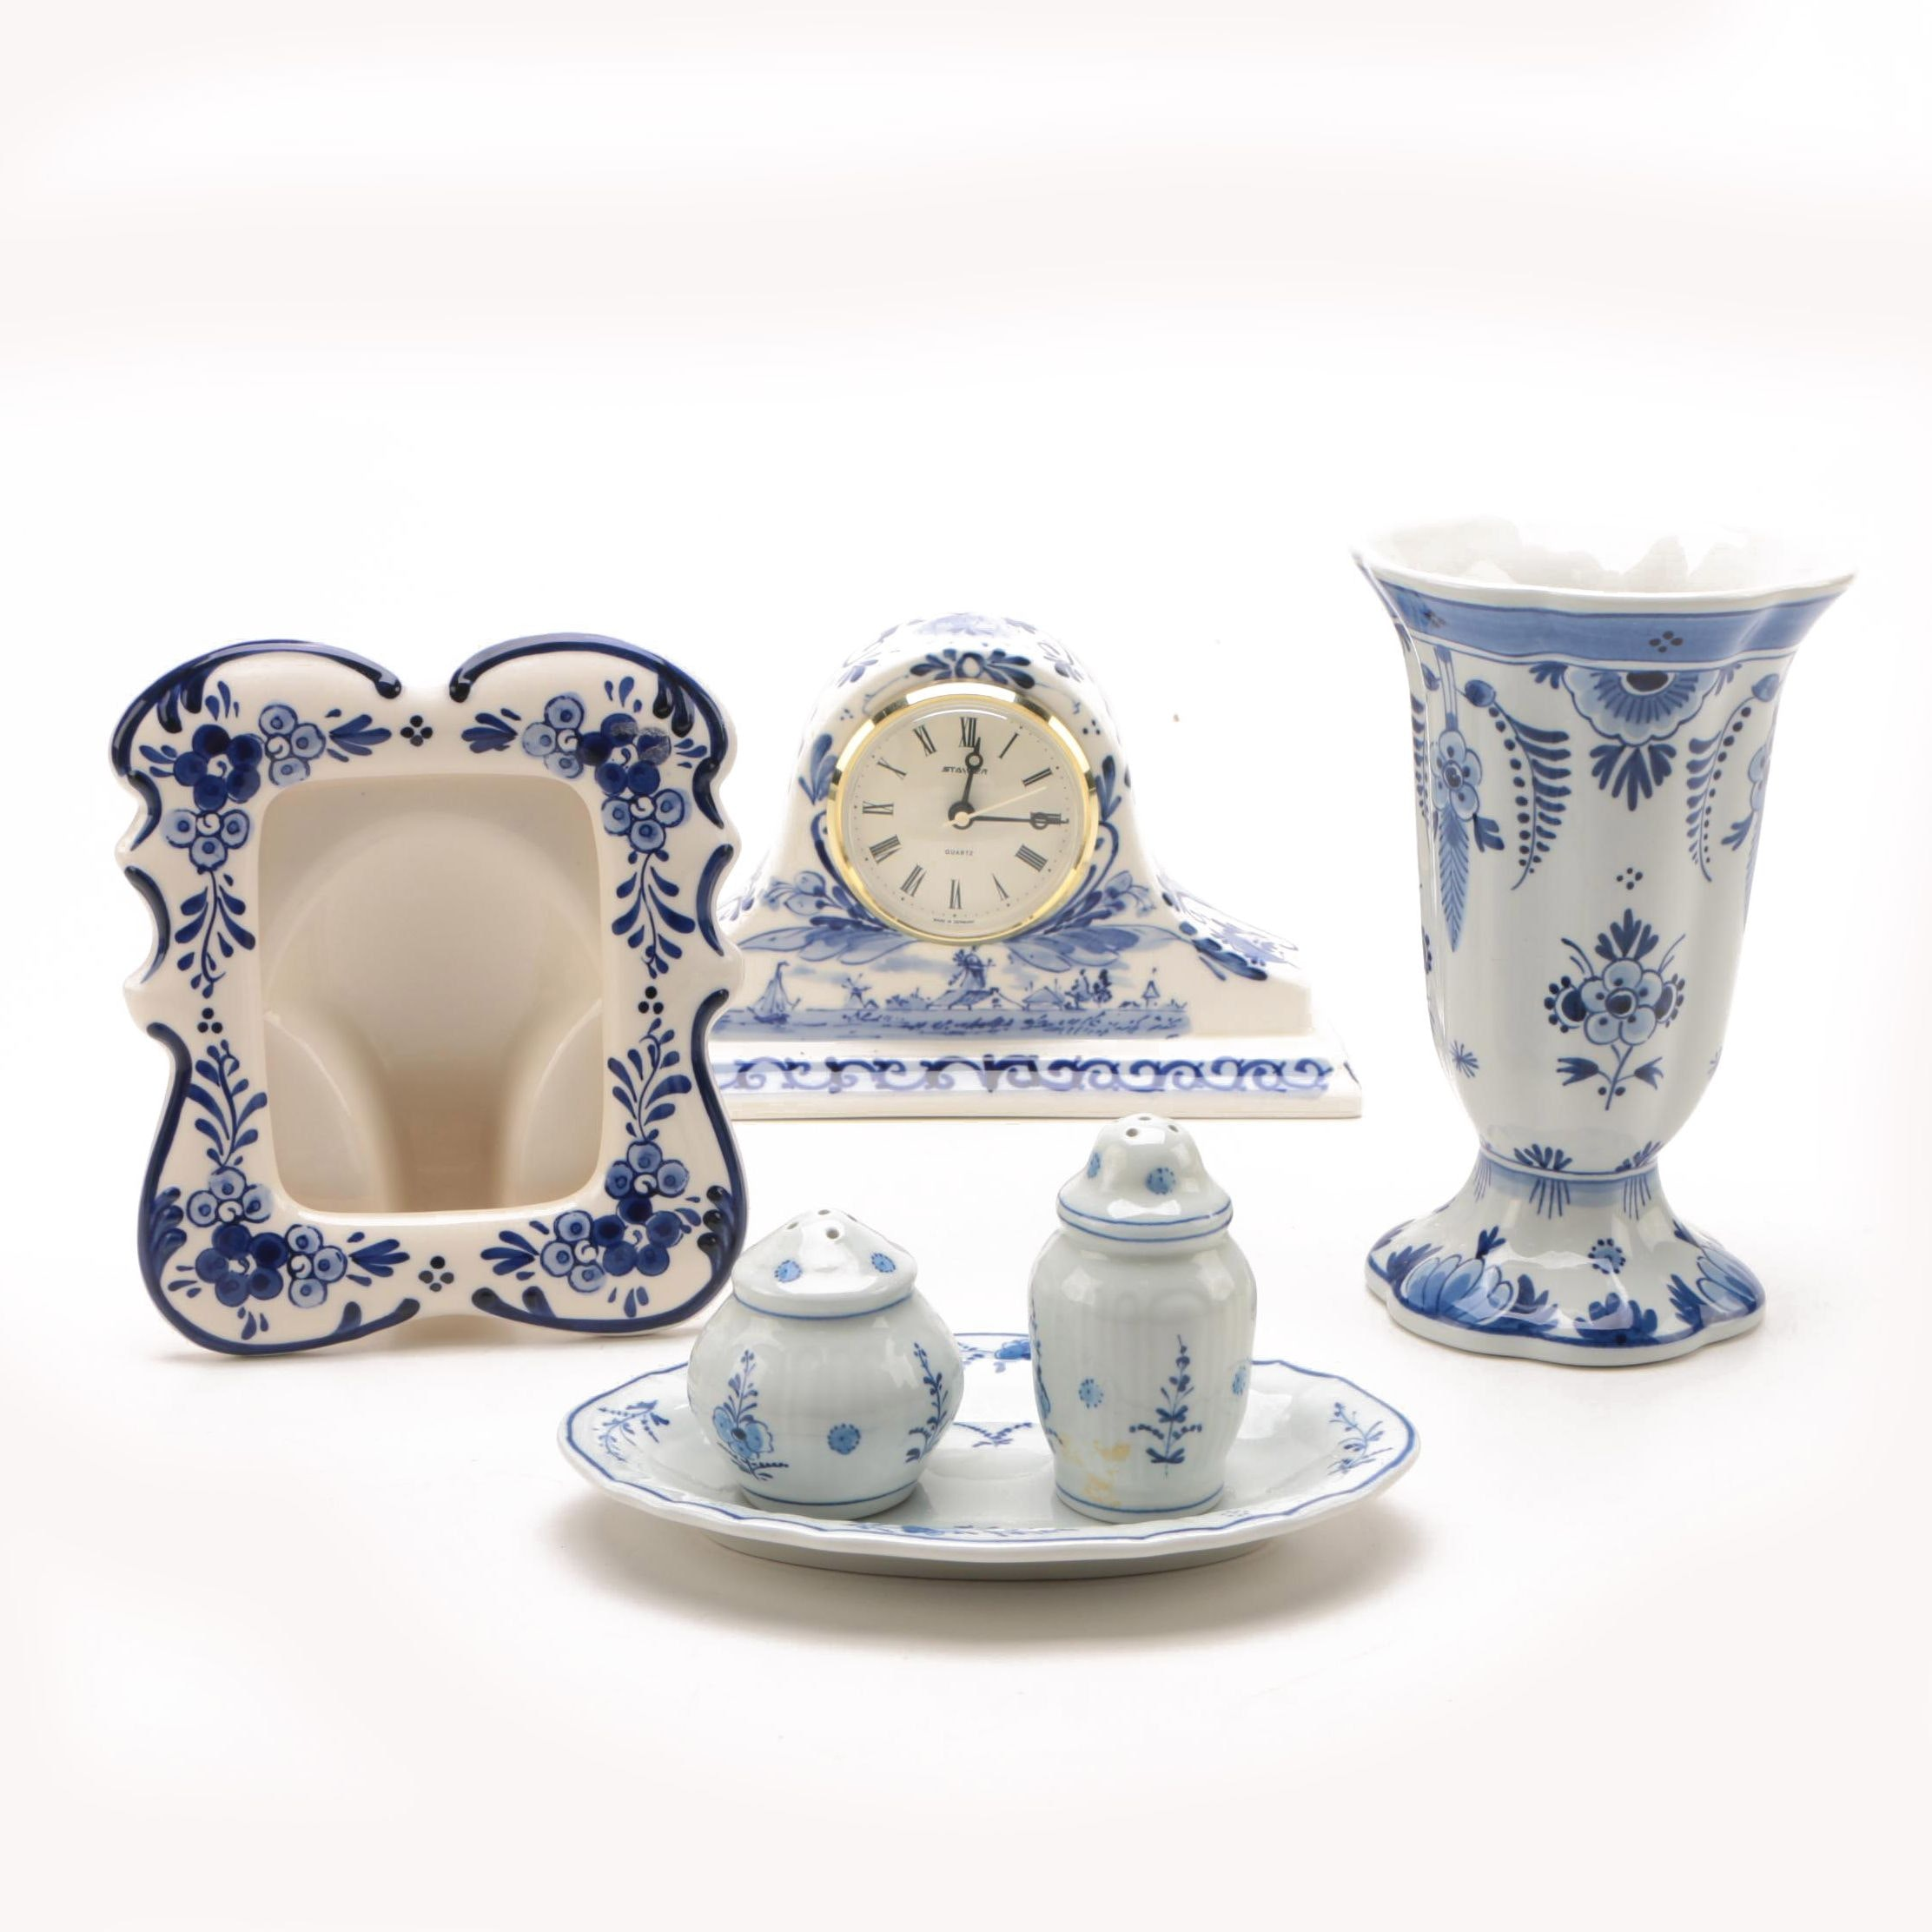 Blue and White Delft Clock, Elesva Frame and Royal Delft Shakers and Vase